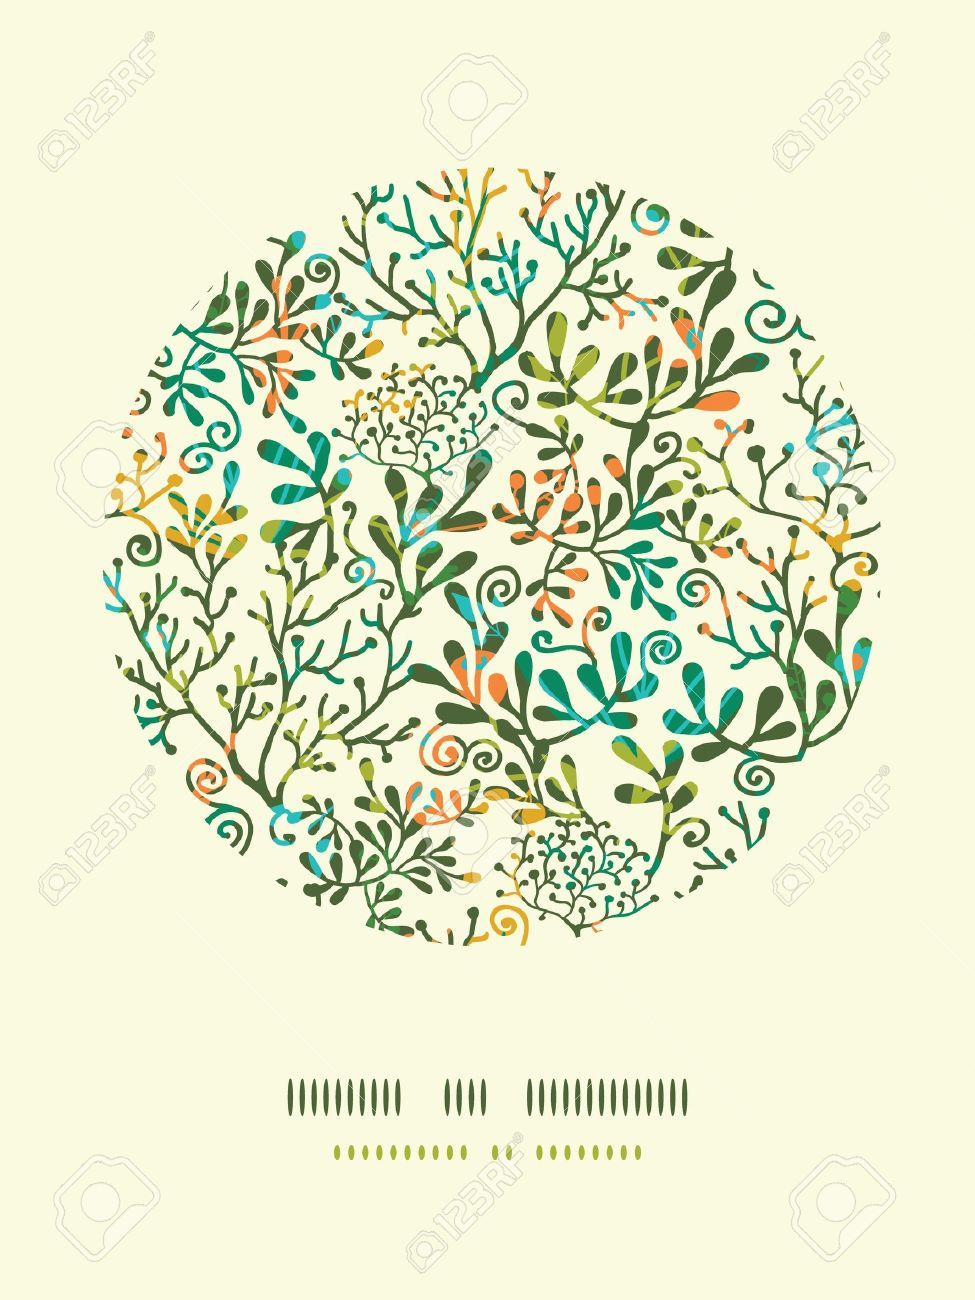 Textured Plants Circle Decor Pattern Background Stock Vector - 19278267